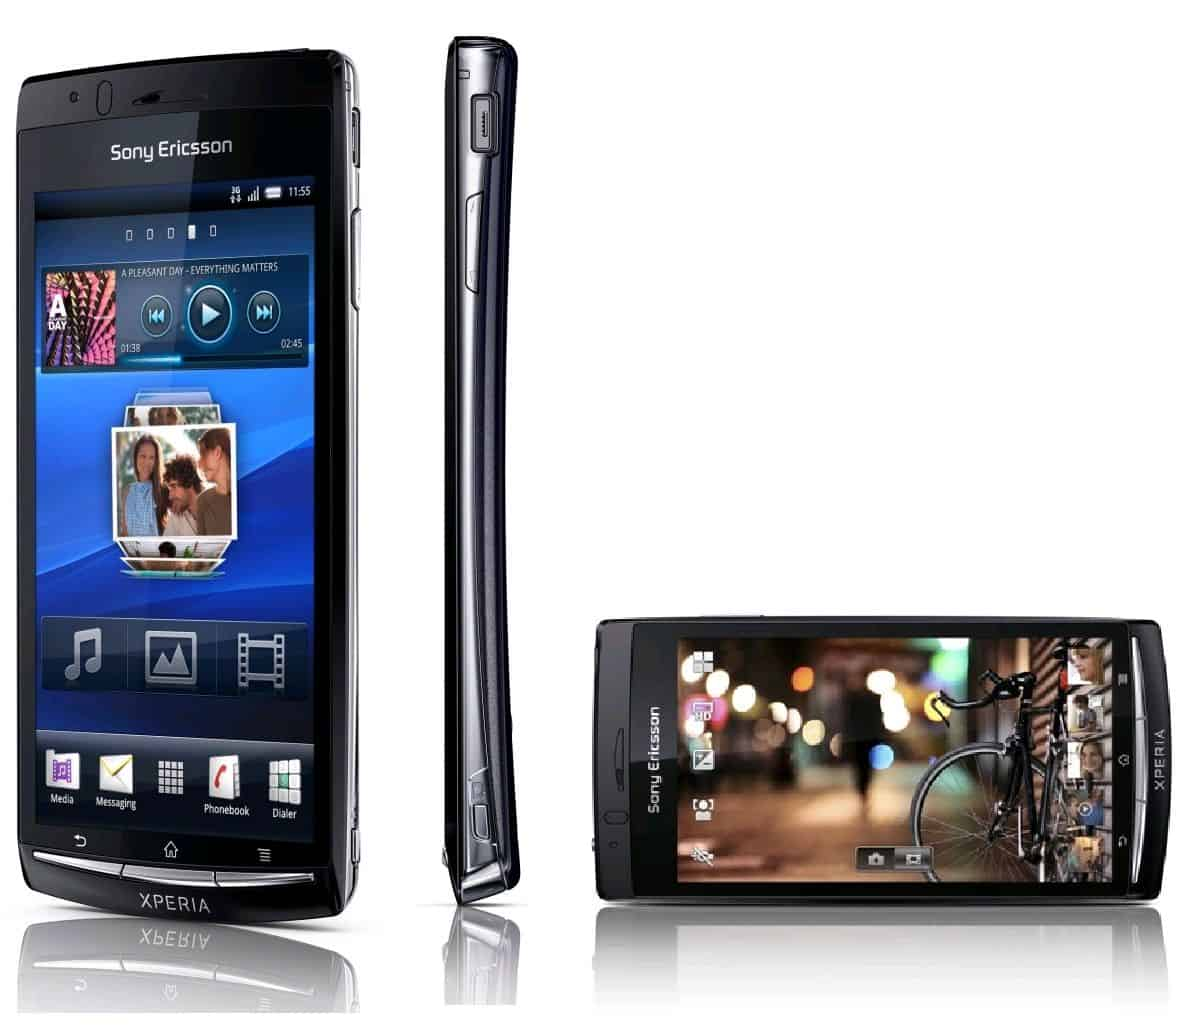 sony ericsson xperia arc s lt18i 4.0.4 firmware download